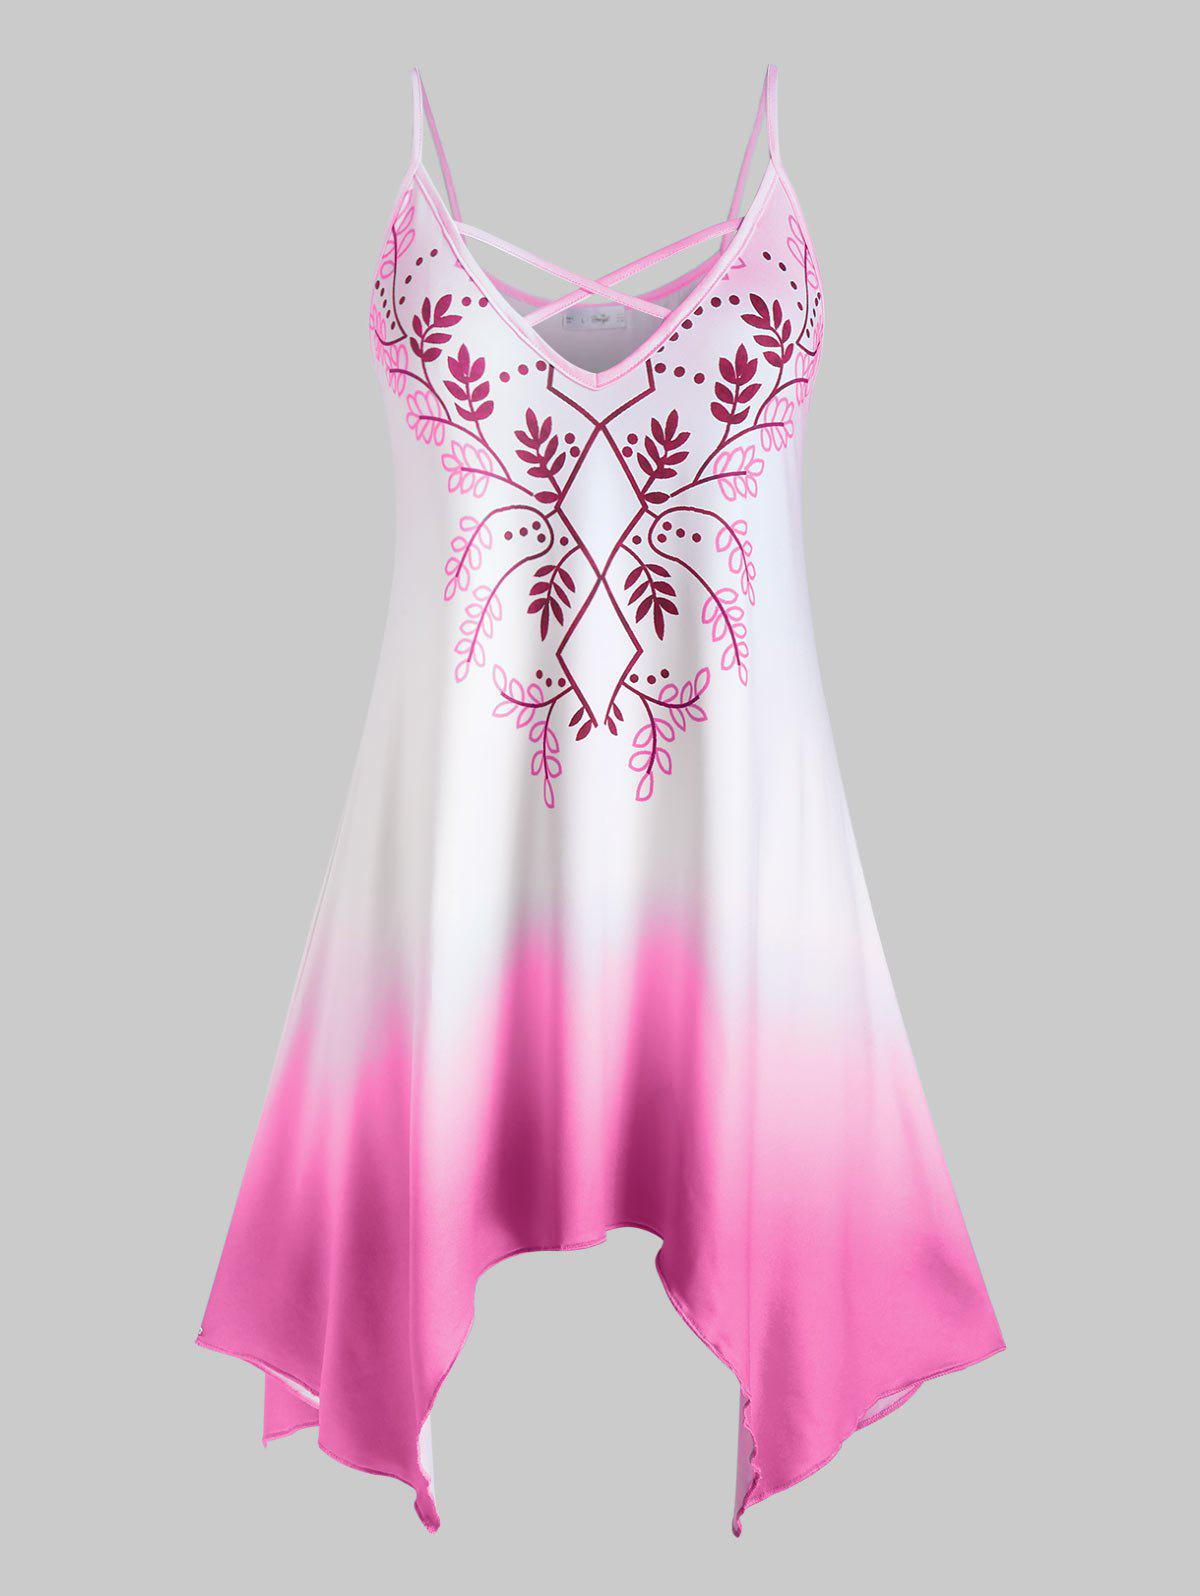 Plus Size Leaves Print Ombre Color Handkerchief Tank Top - LIGHT PINK 5X